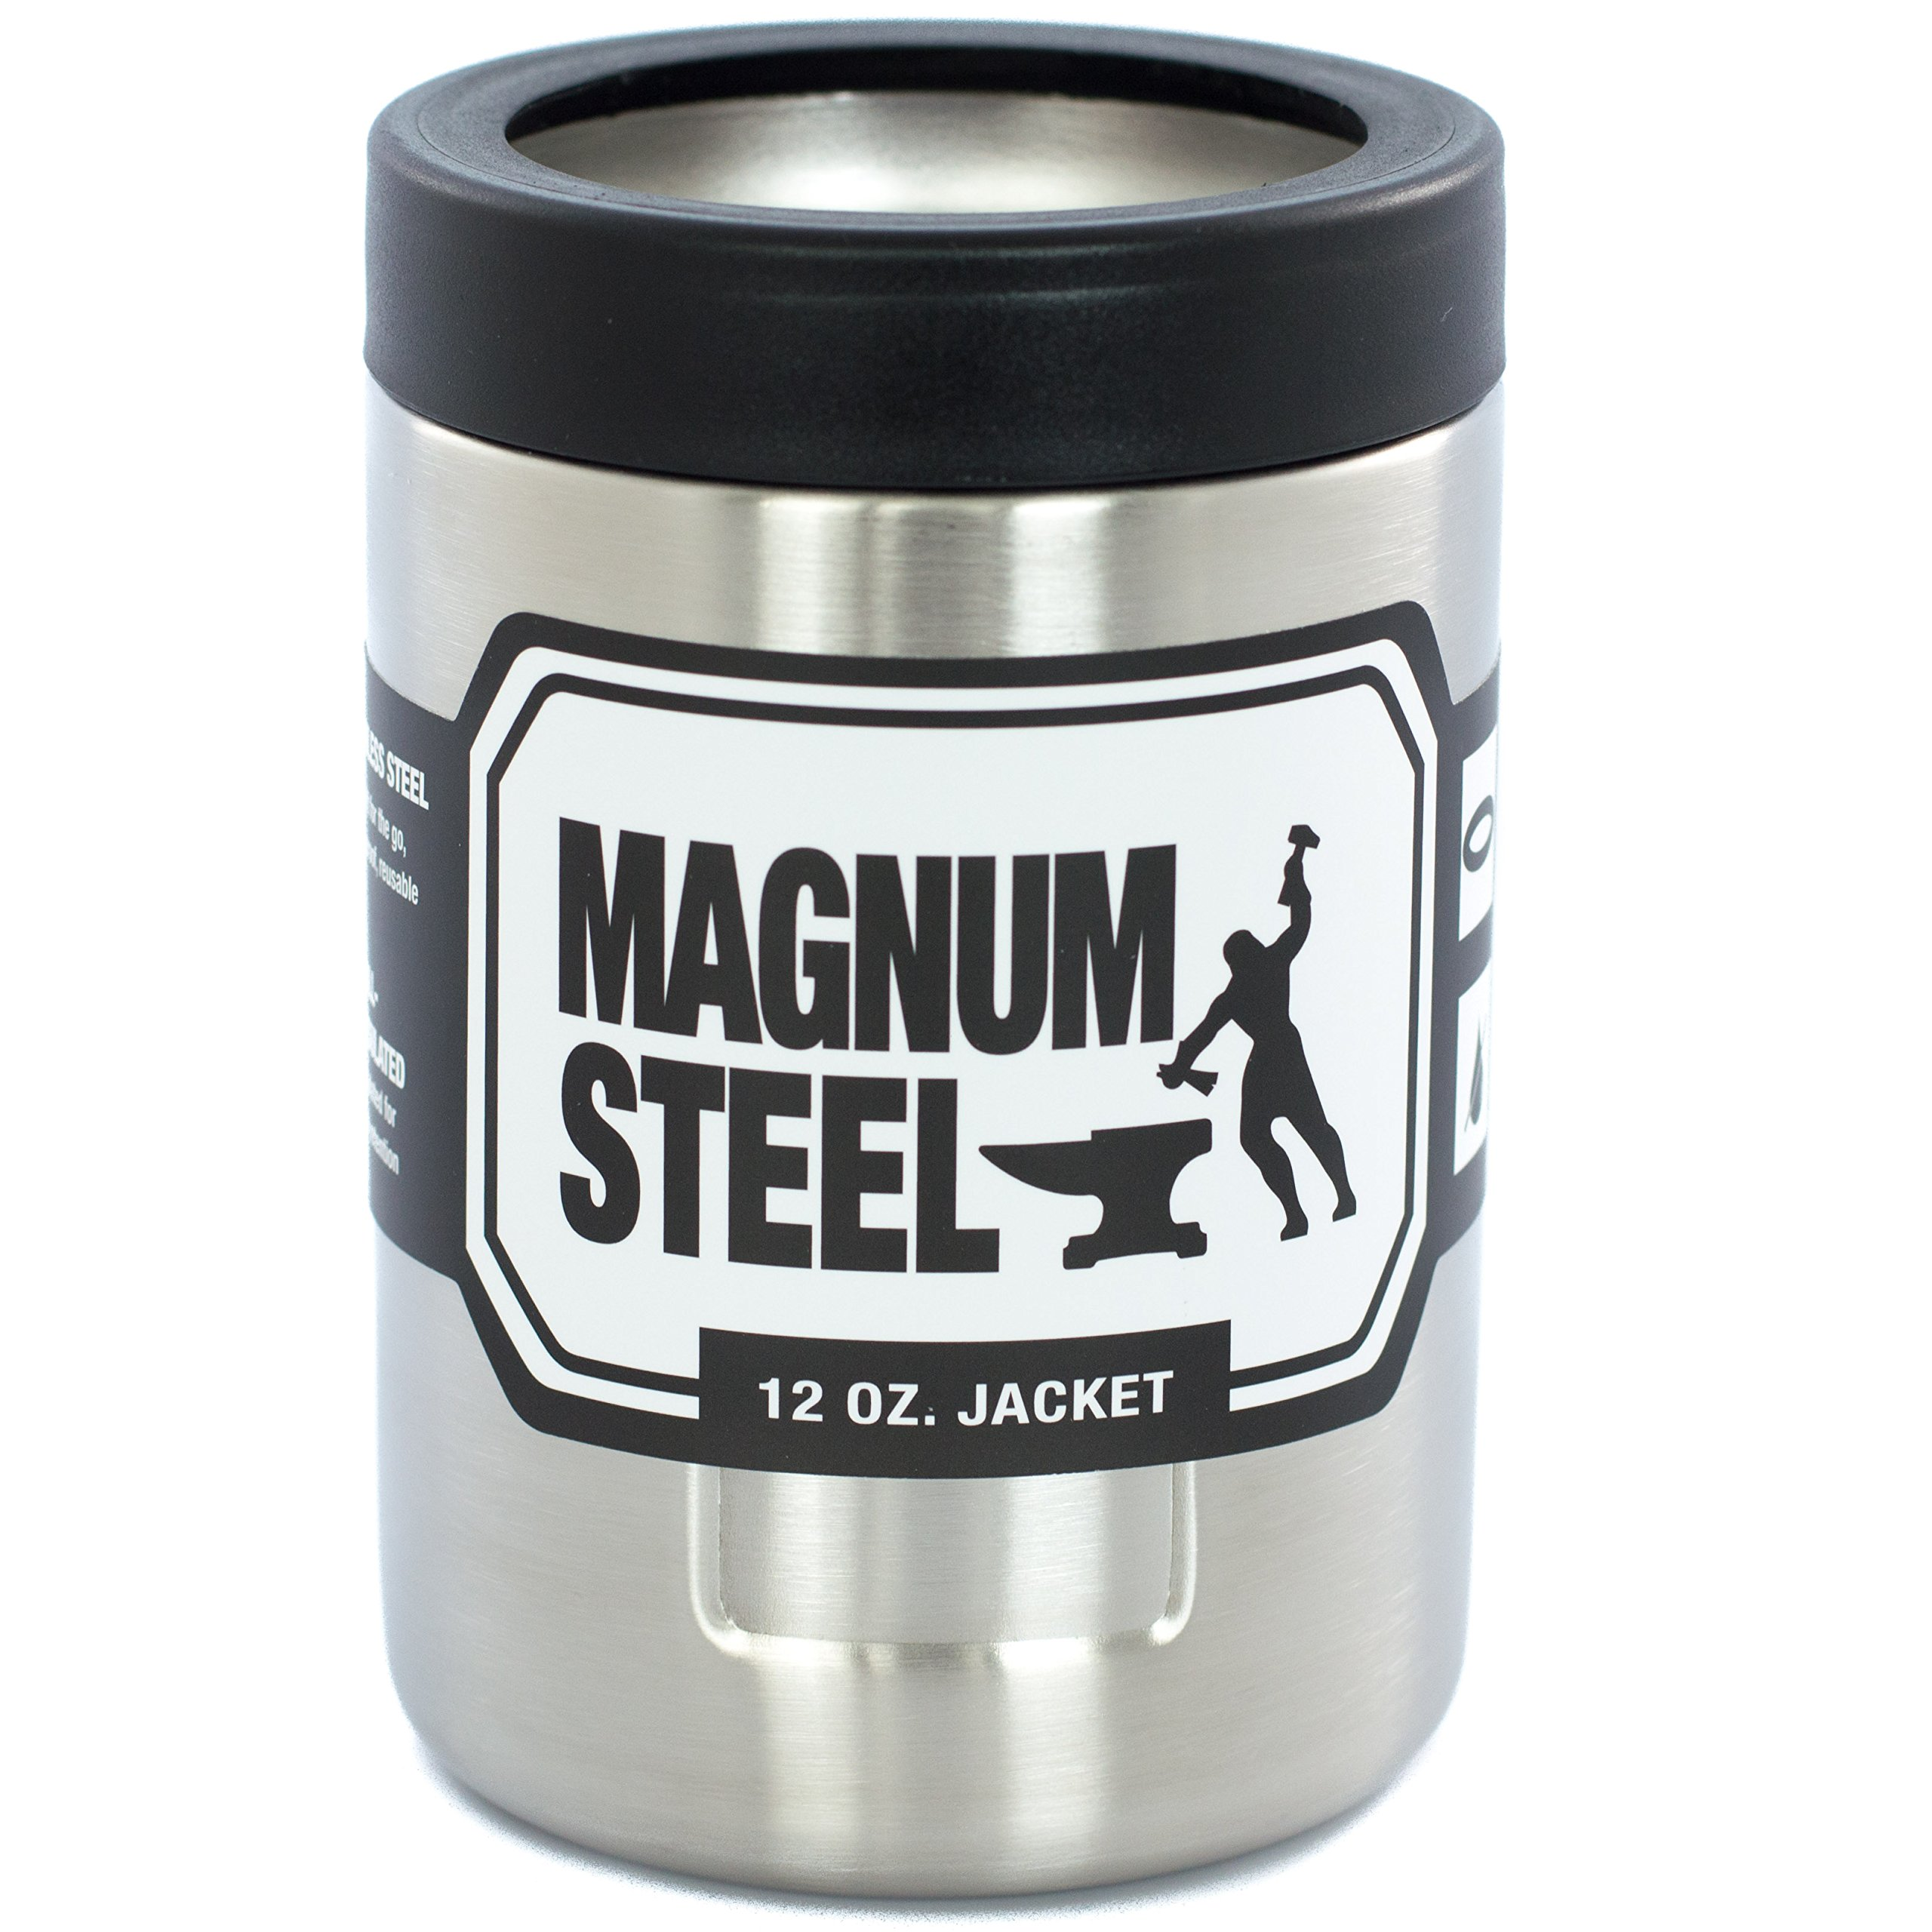 Stainless Steel Can Cooler ~ Magnum steel oz stainless can cooler black